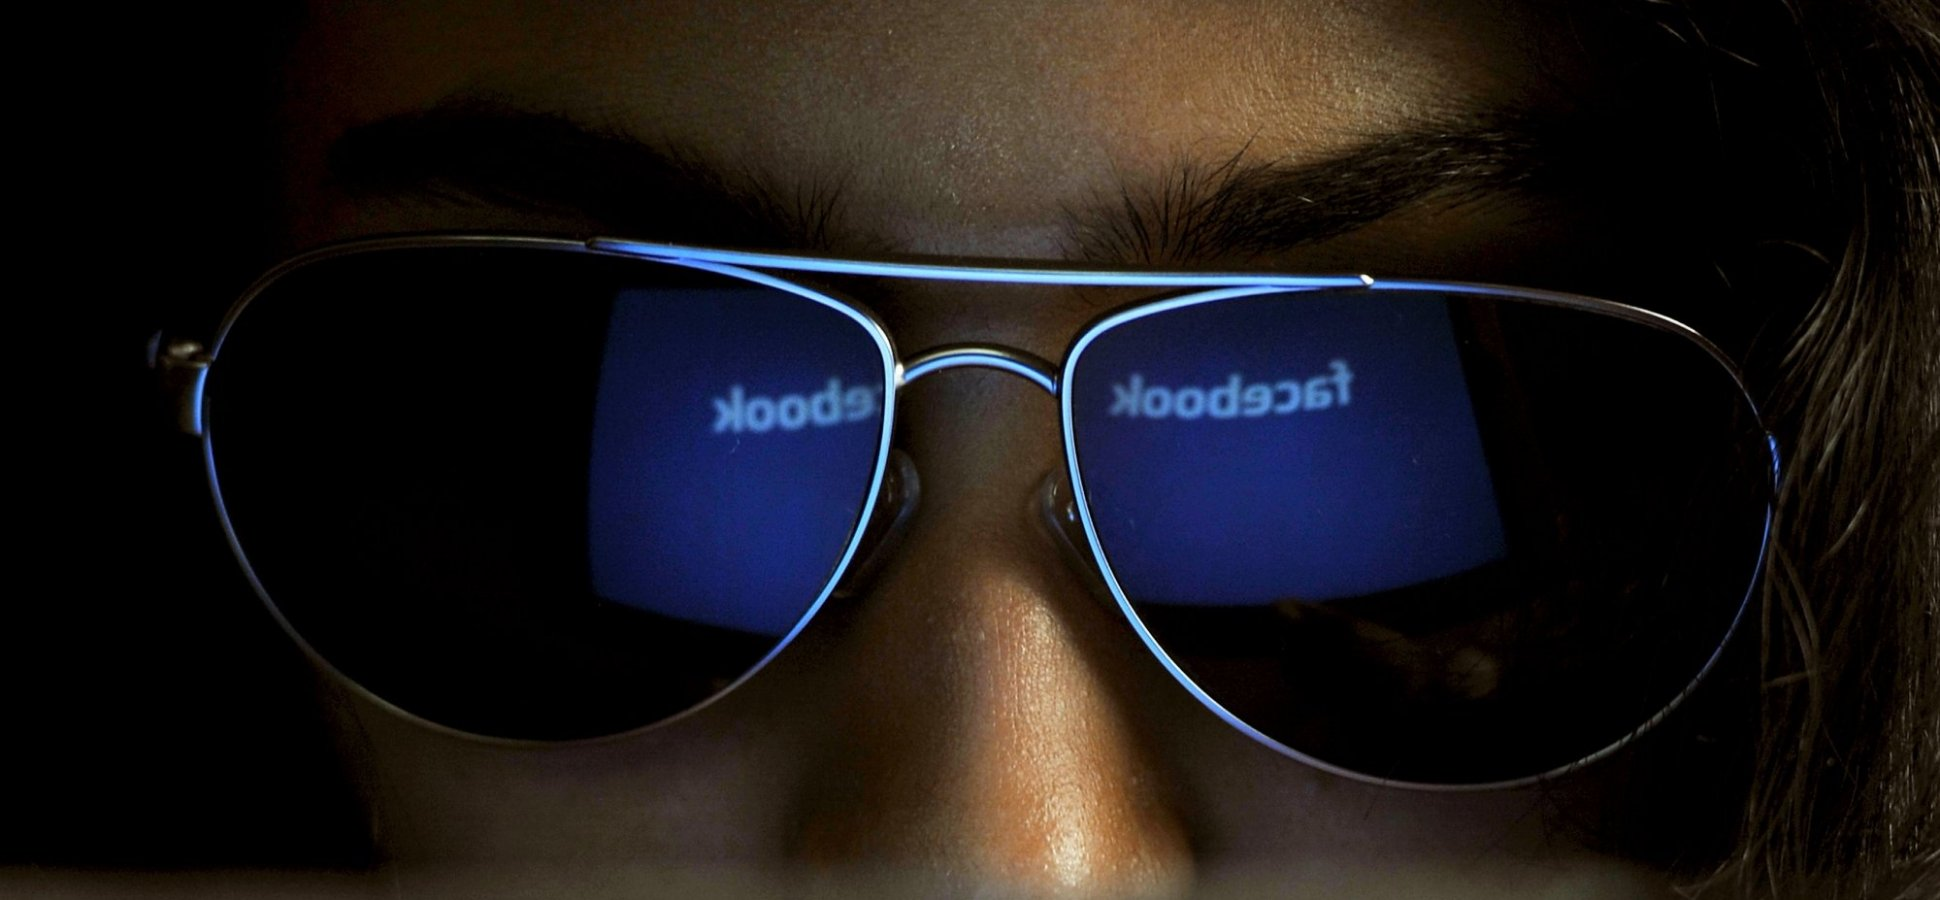 You Should Never, Ever Argue With Anyone on Facebook, According to Science